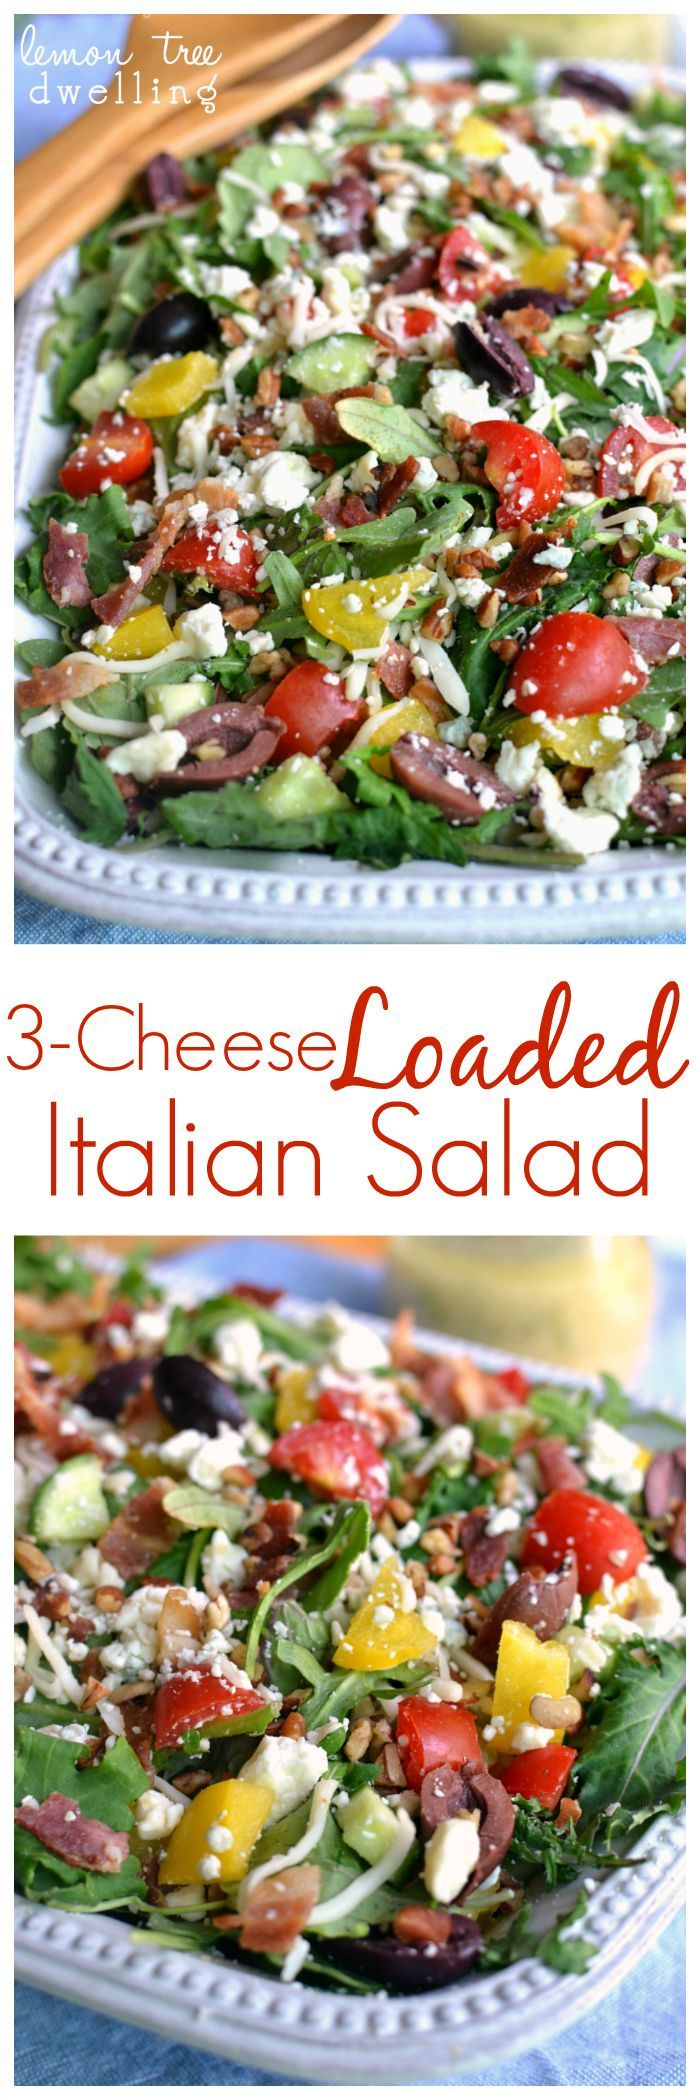 3-Cheese Loaded Italian Salad- make it to go alongside pizza or just have it on it's own  | Lemon Tree Dwelling